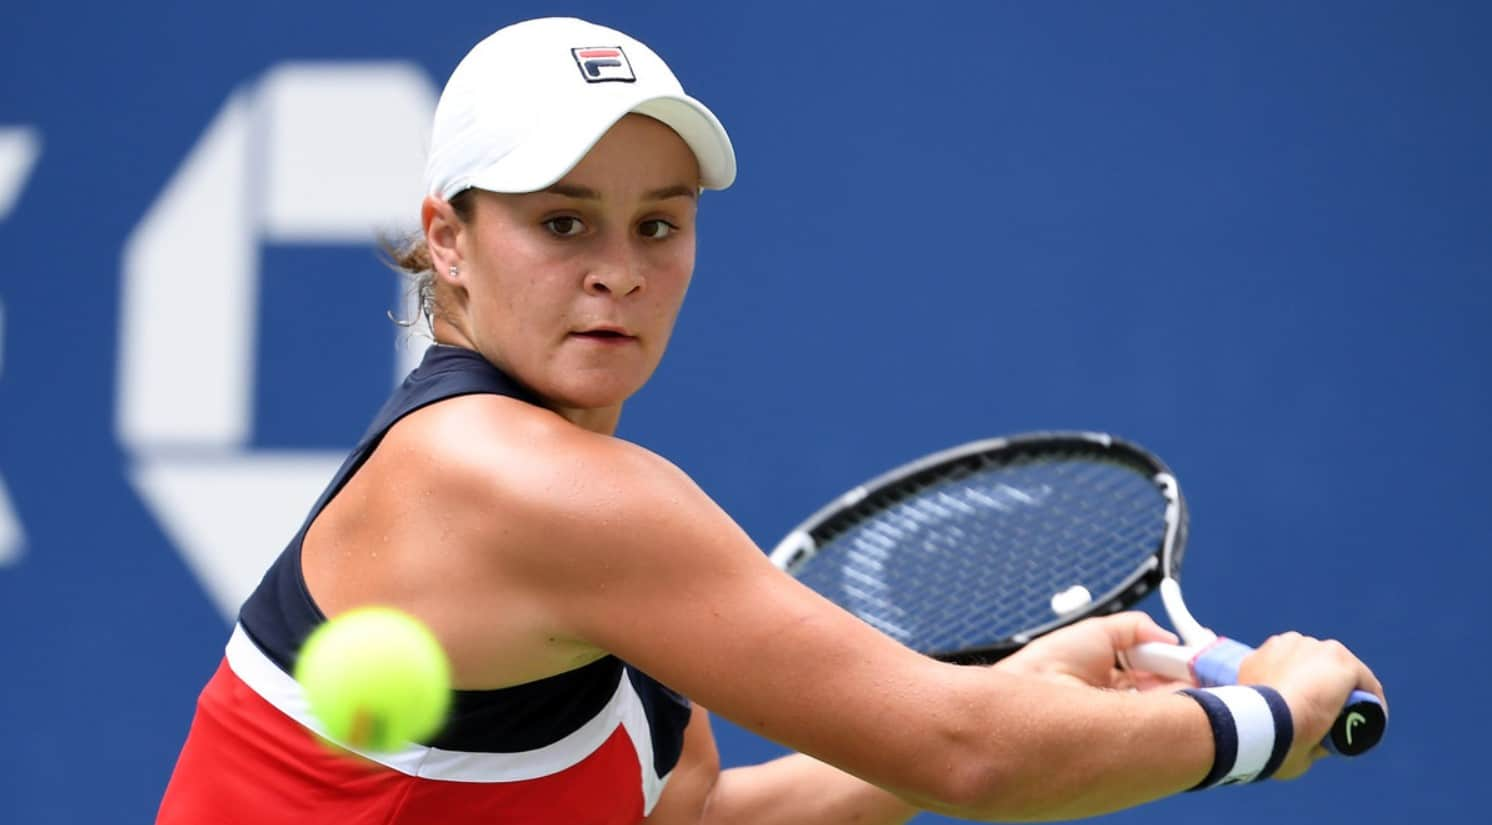 Ashleigh Barty Lost her Opening match in the Adelaide International